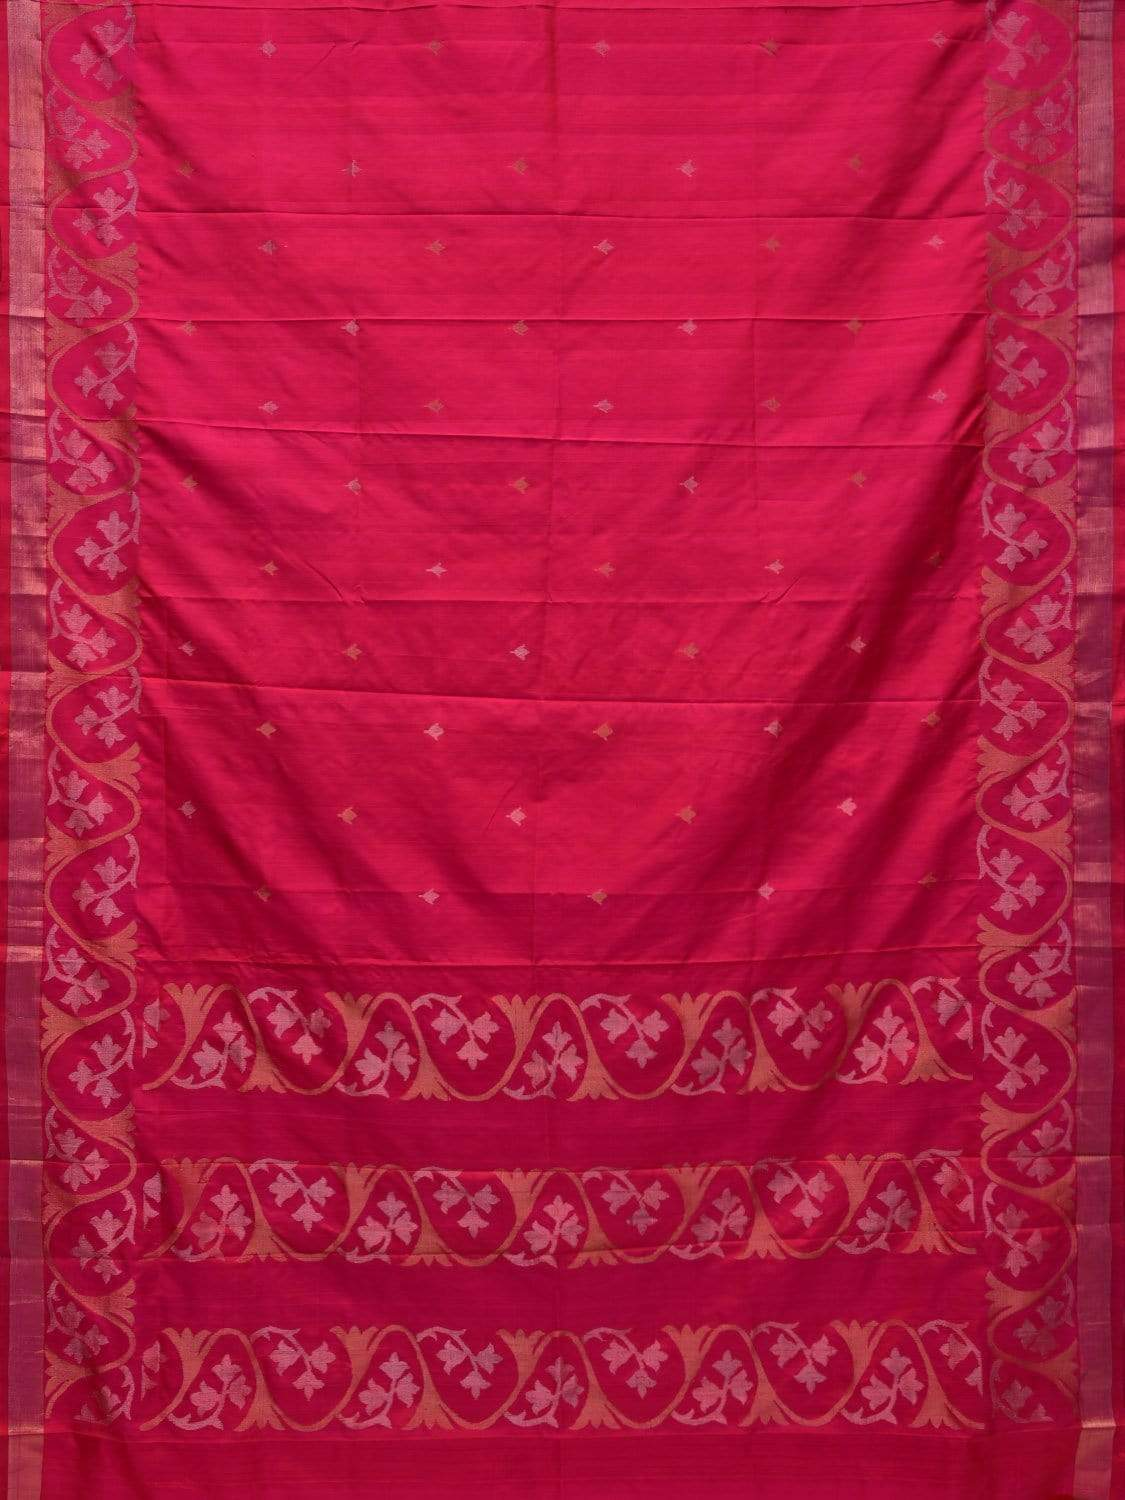 Pink Uppada Silk Handloom Saree with Border Design u1636